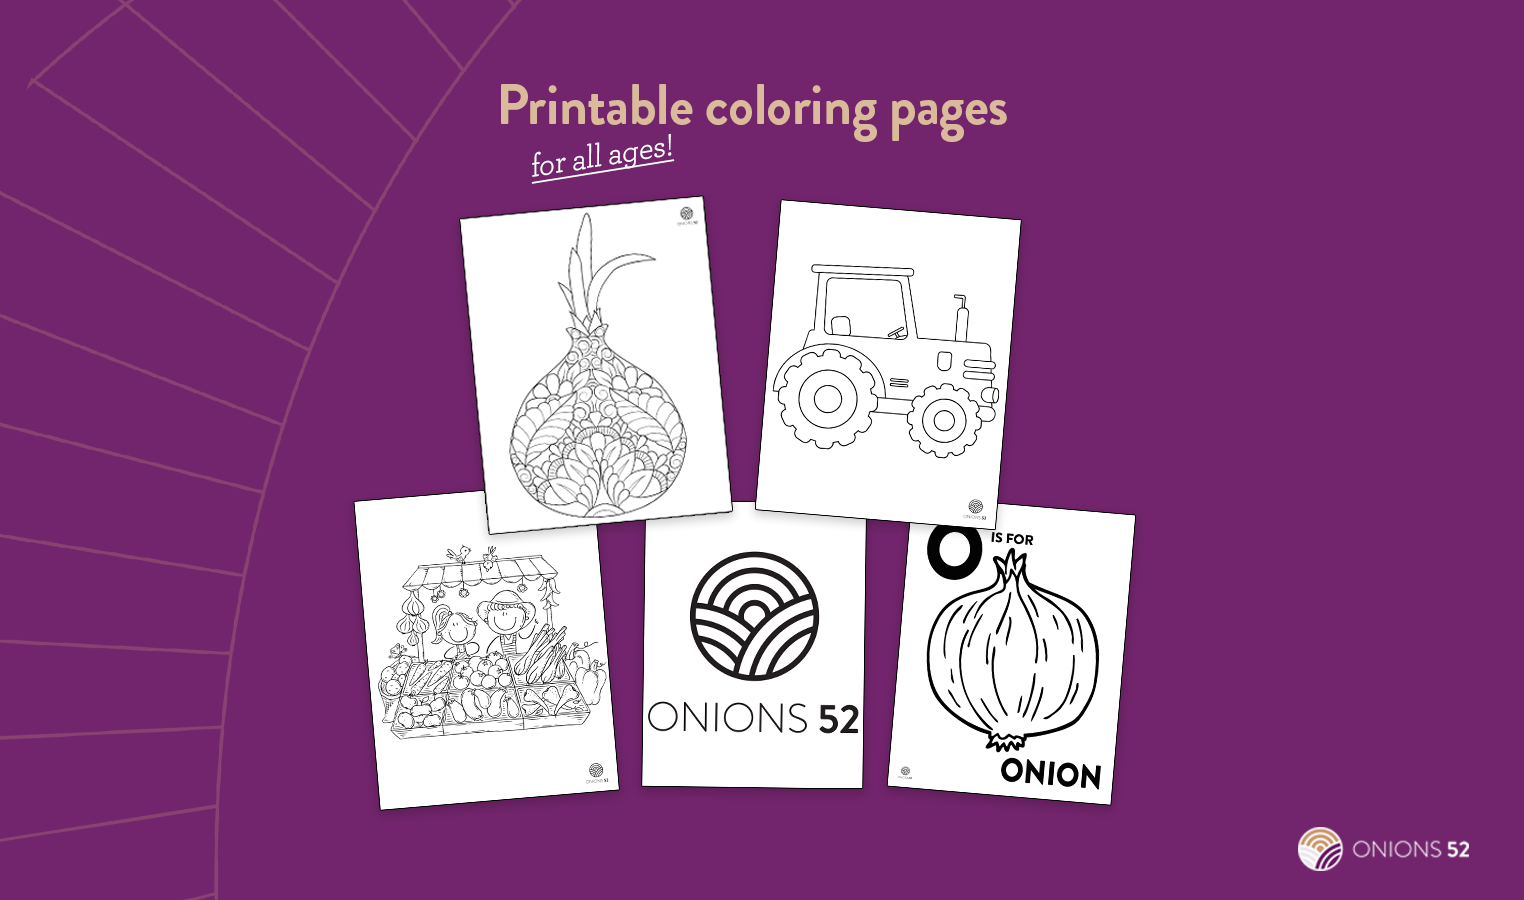 Printable Coloring Pages from Onions 52